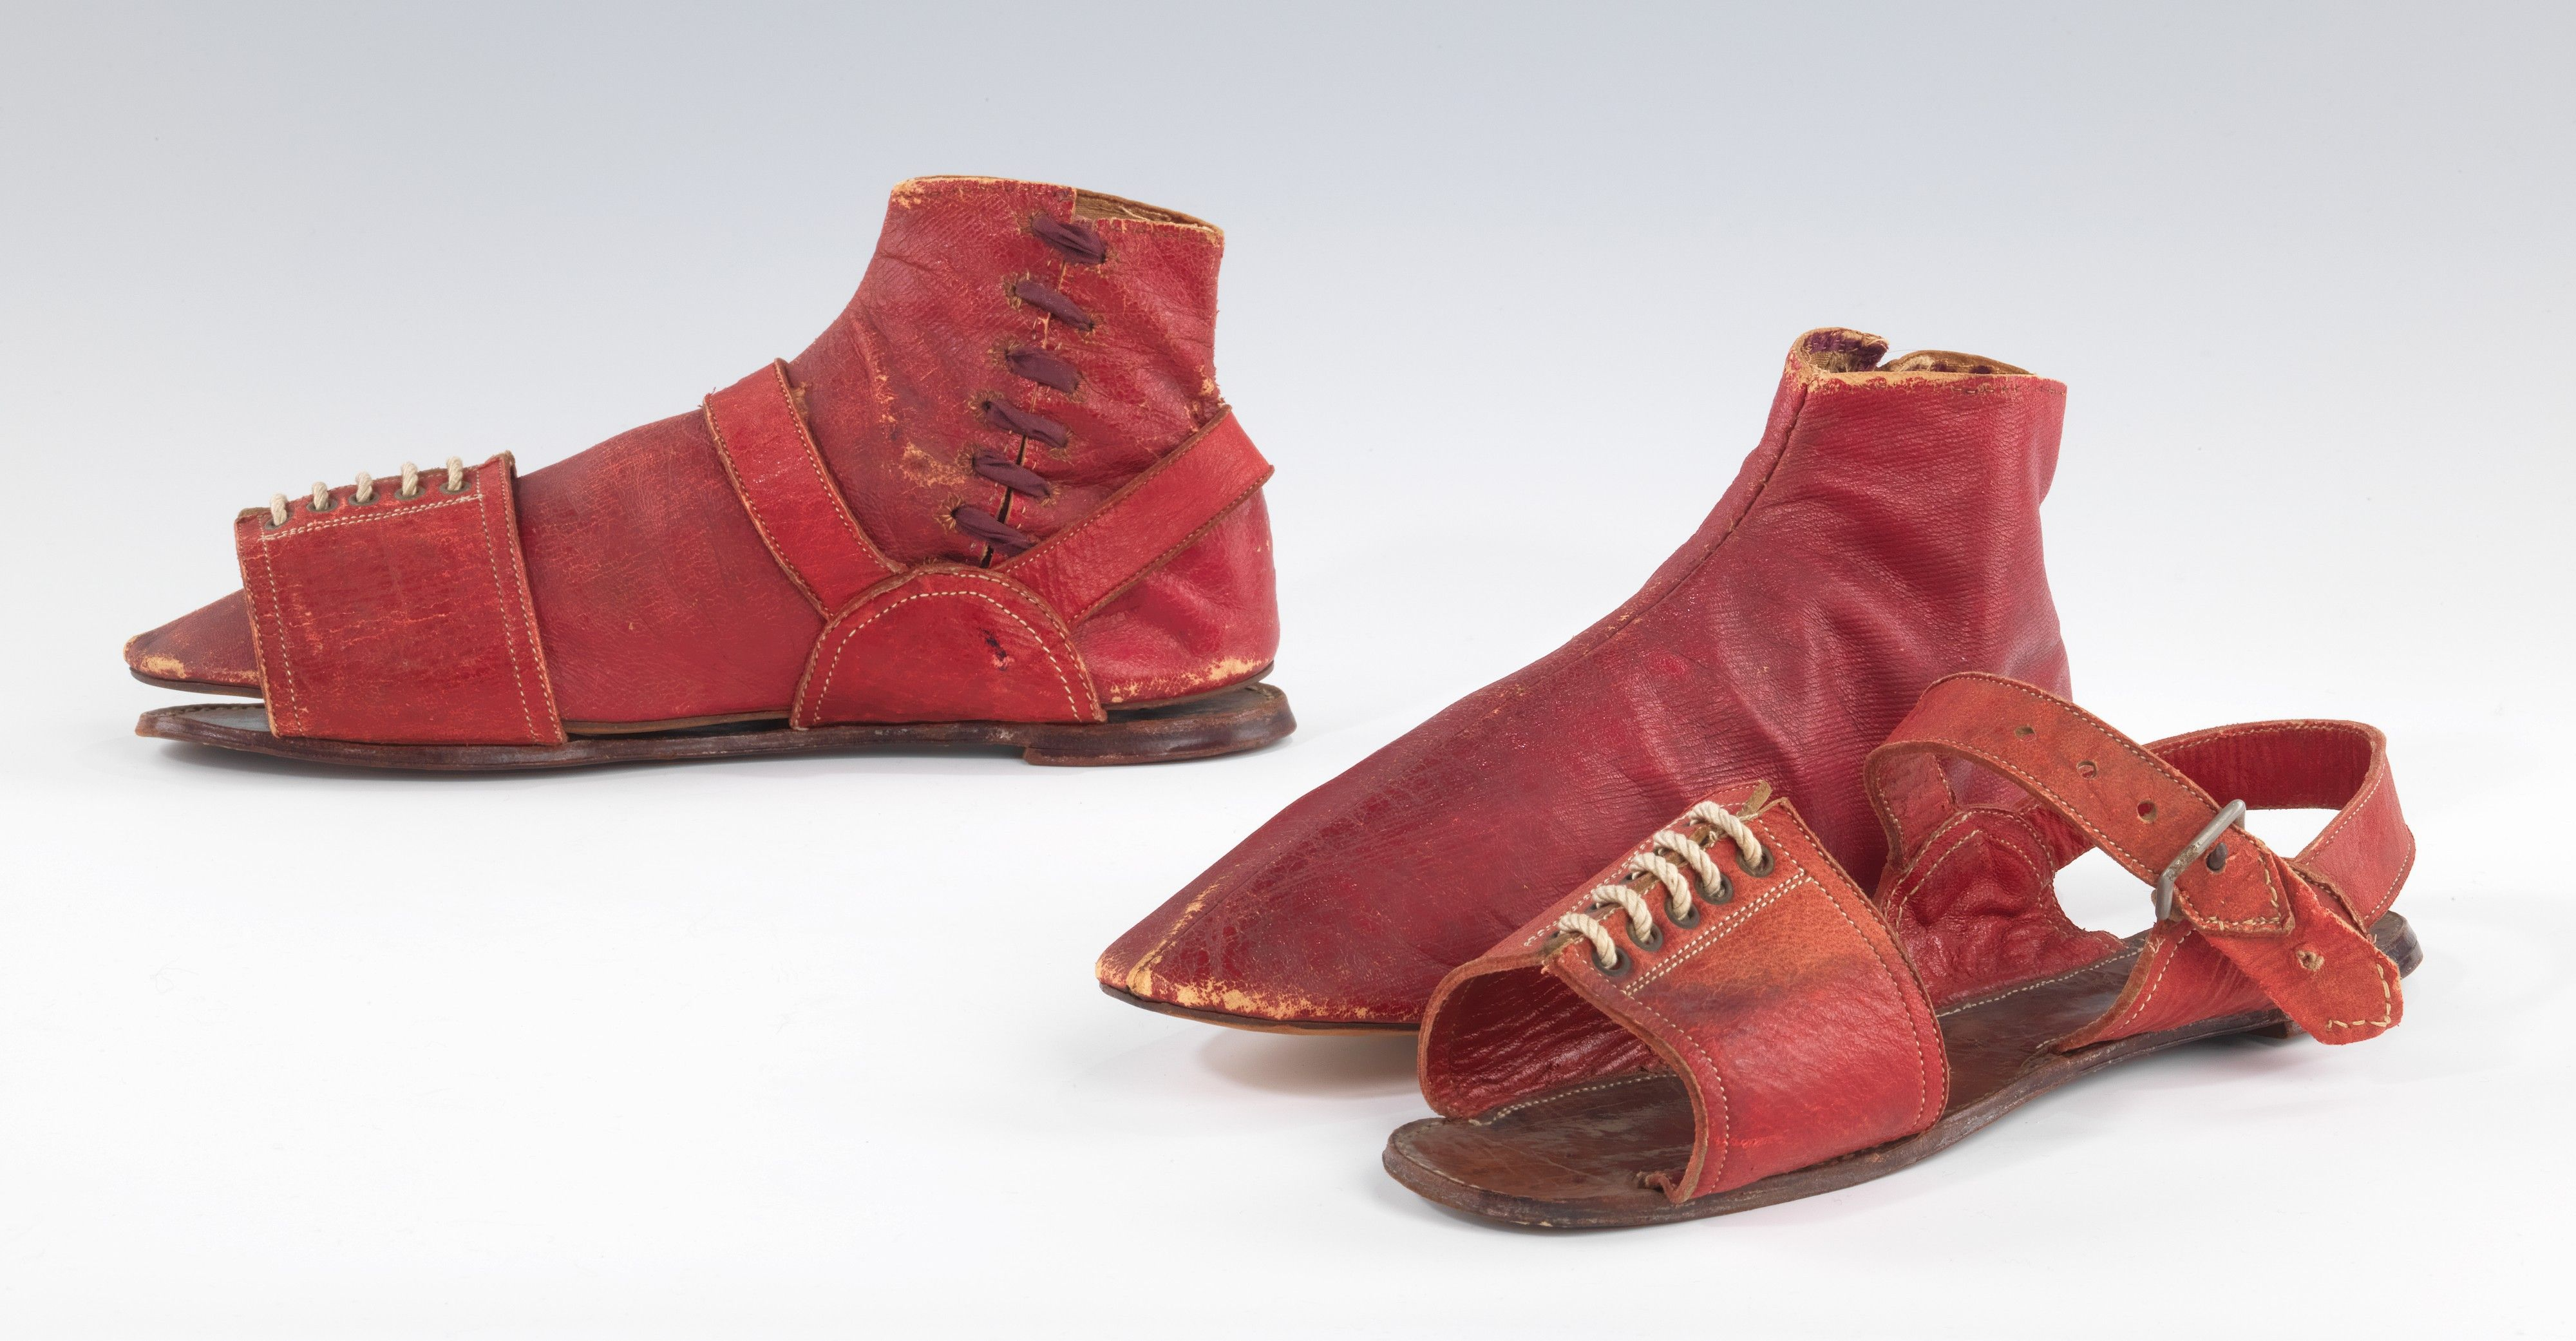 1820 30s Set Of Boots (flimsy) And Pattens (for Heavier Walking Duty